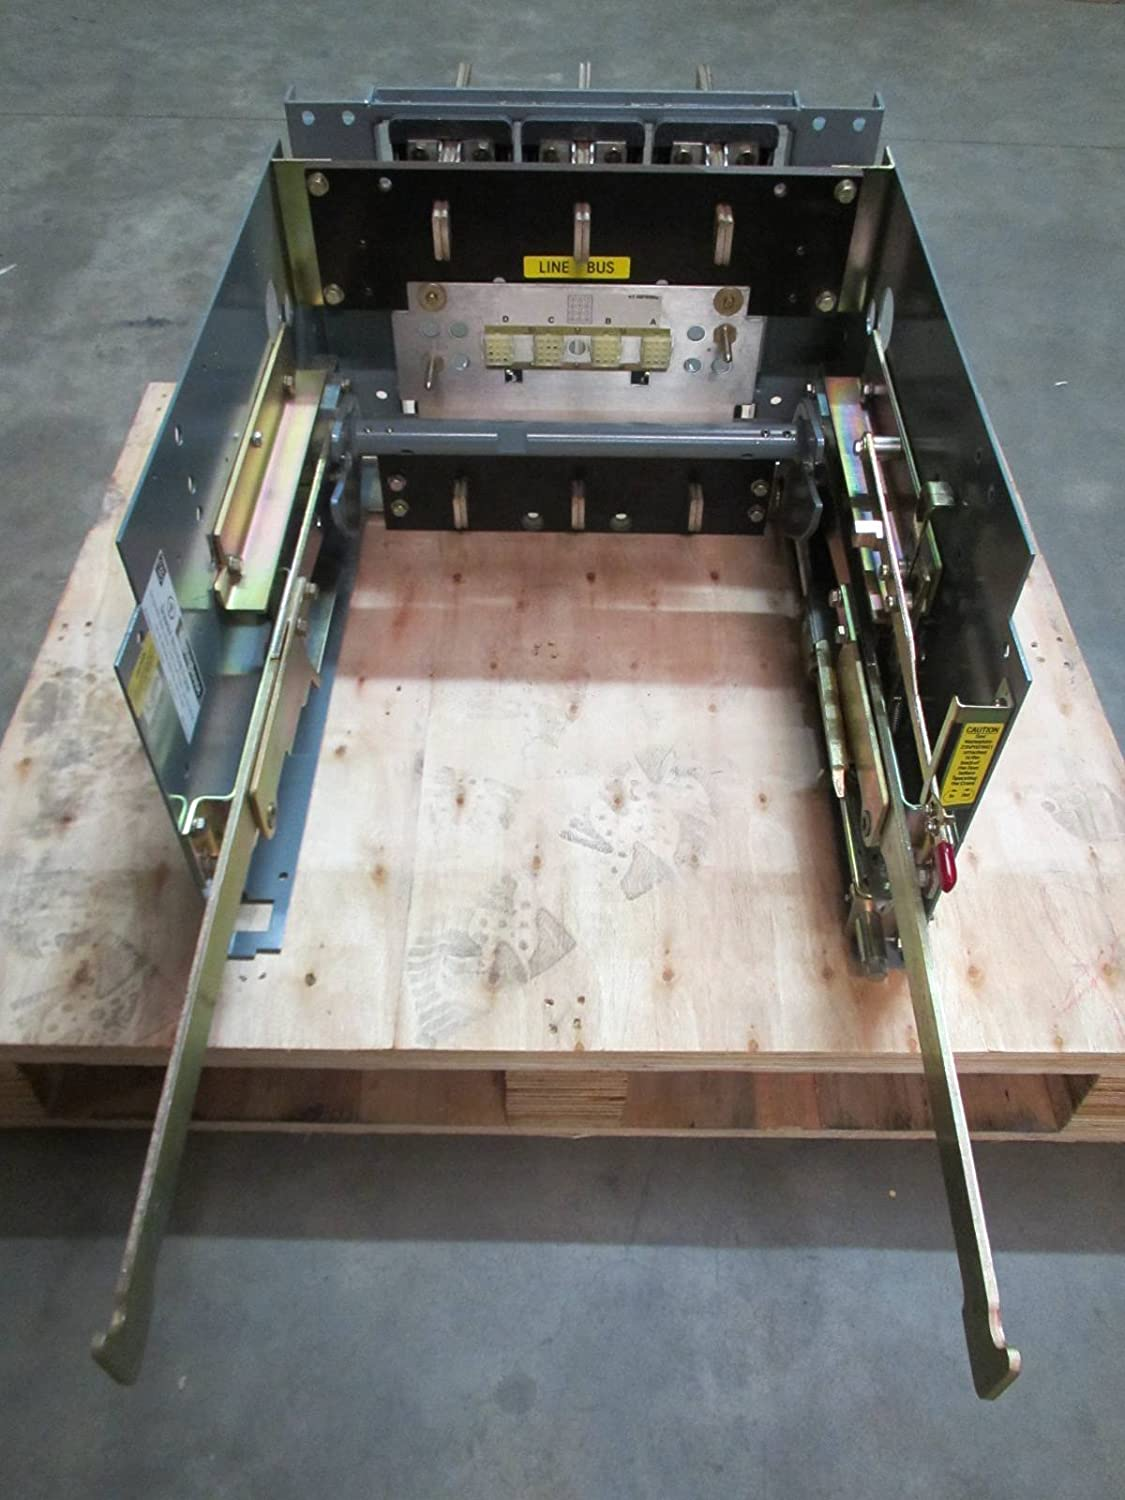 Westinghouse Spb 100 50 800a Max Drawout Mounting Frame 8spbd0s Square D Qo120gficp 20amp 1pole Gfci Circuit Breaker 8spbdos Industrial Scientific